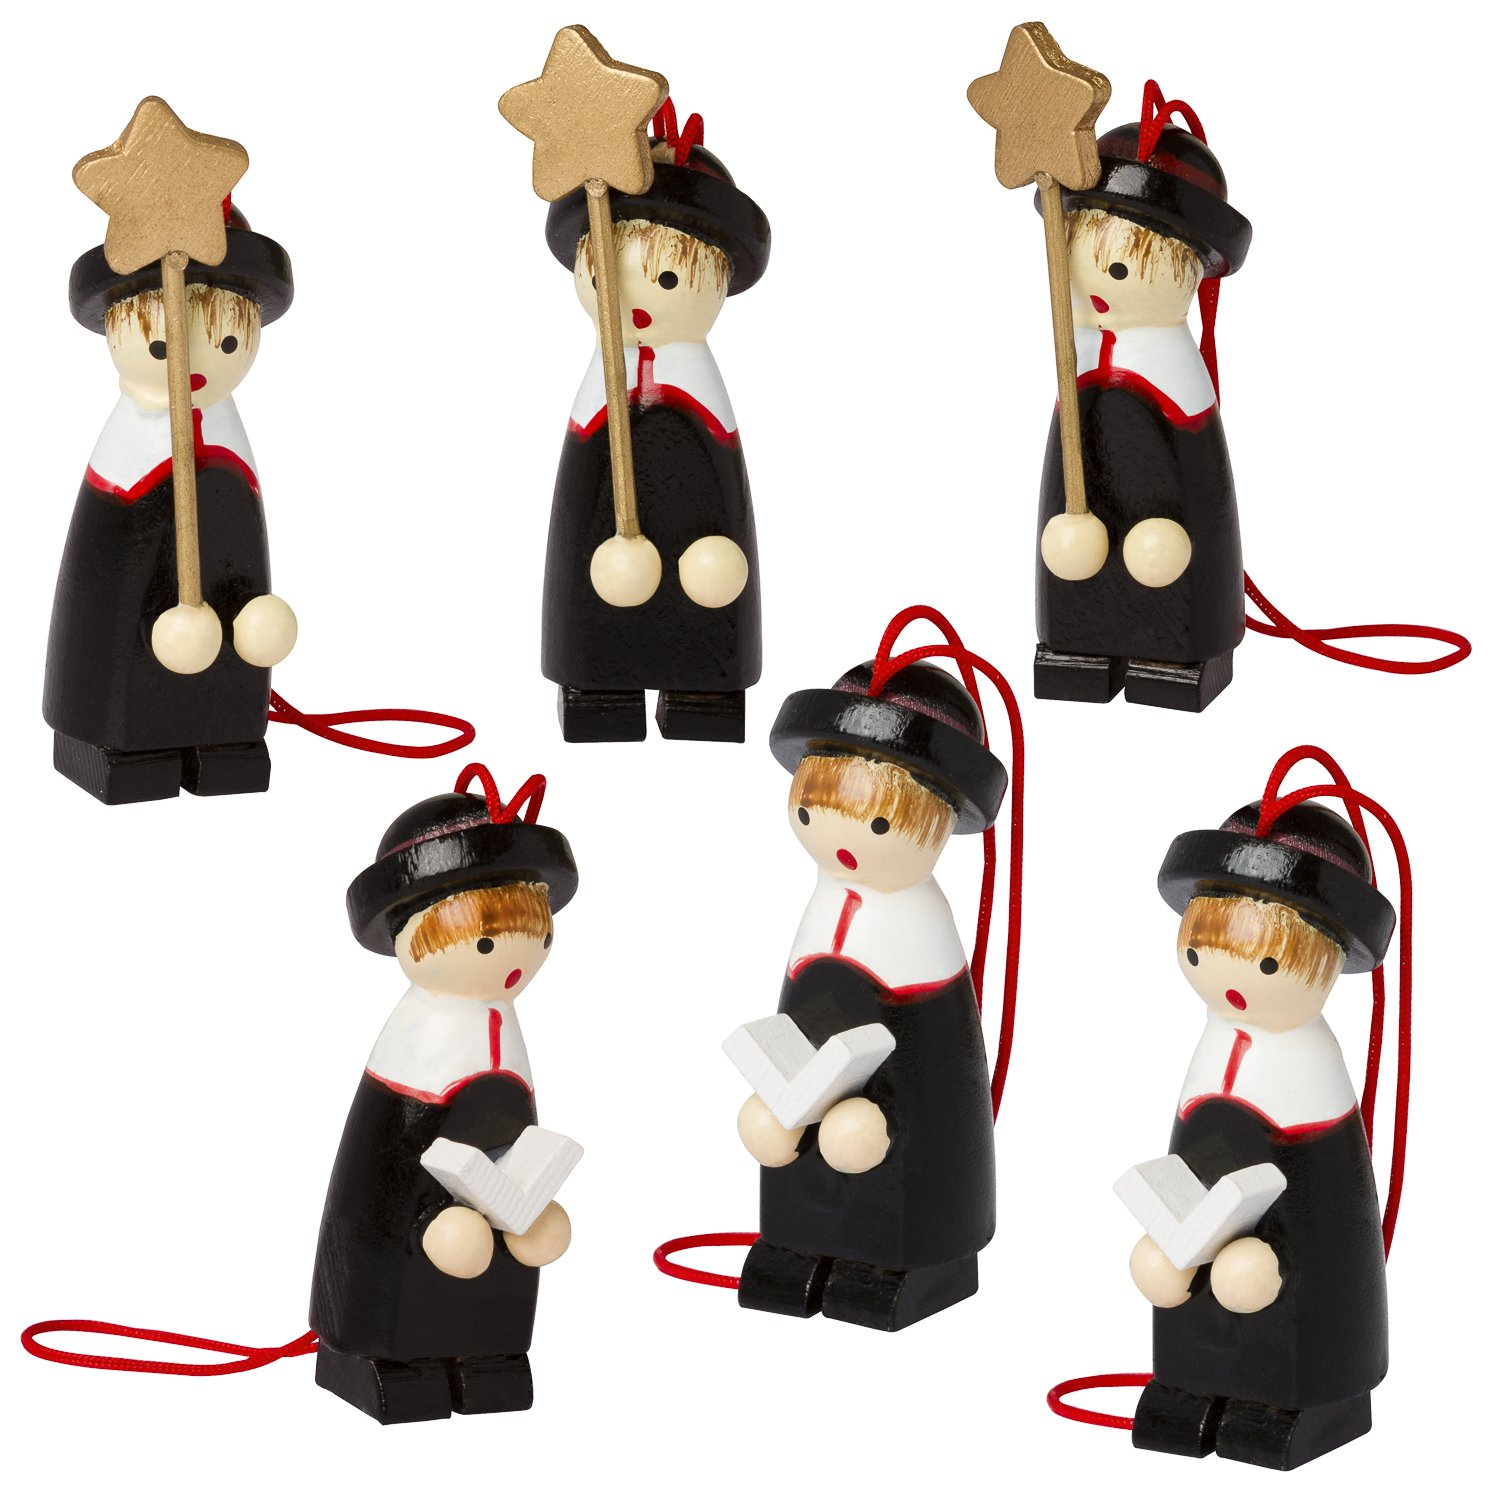 set of 6 wooden christmas tree ornaments designed in germany christmas carolers amazoncouk kitchen home